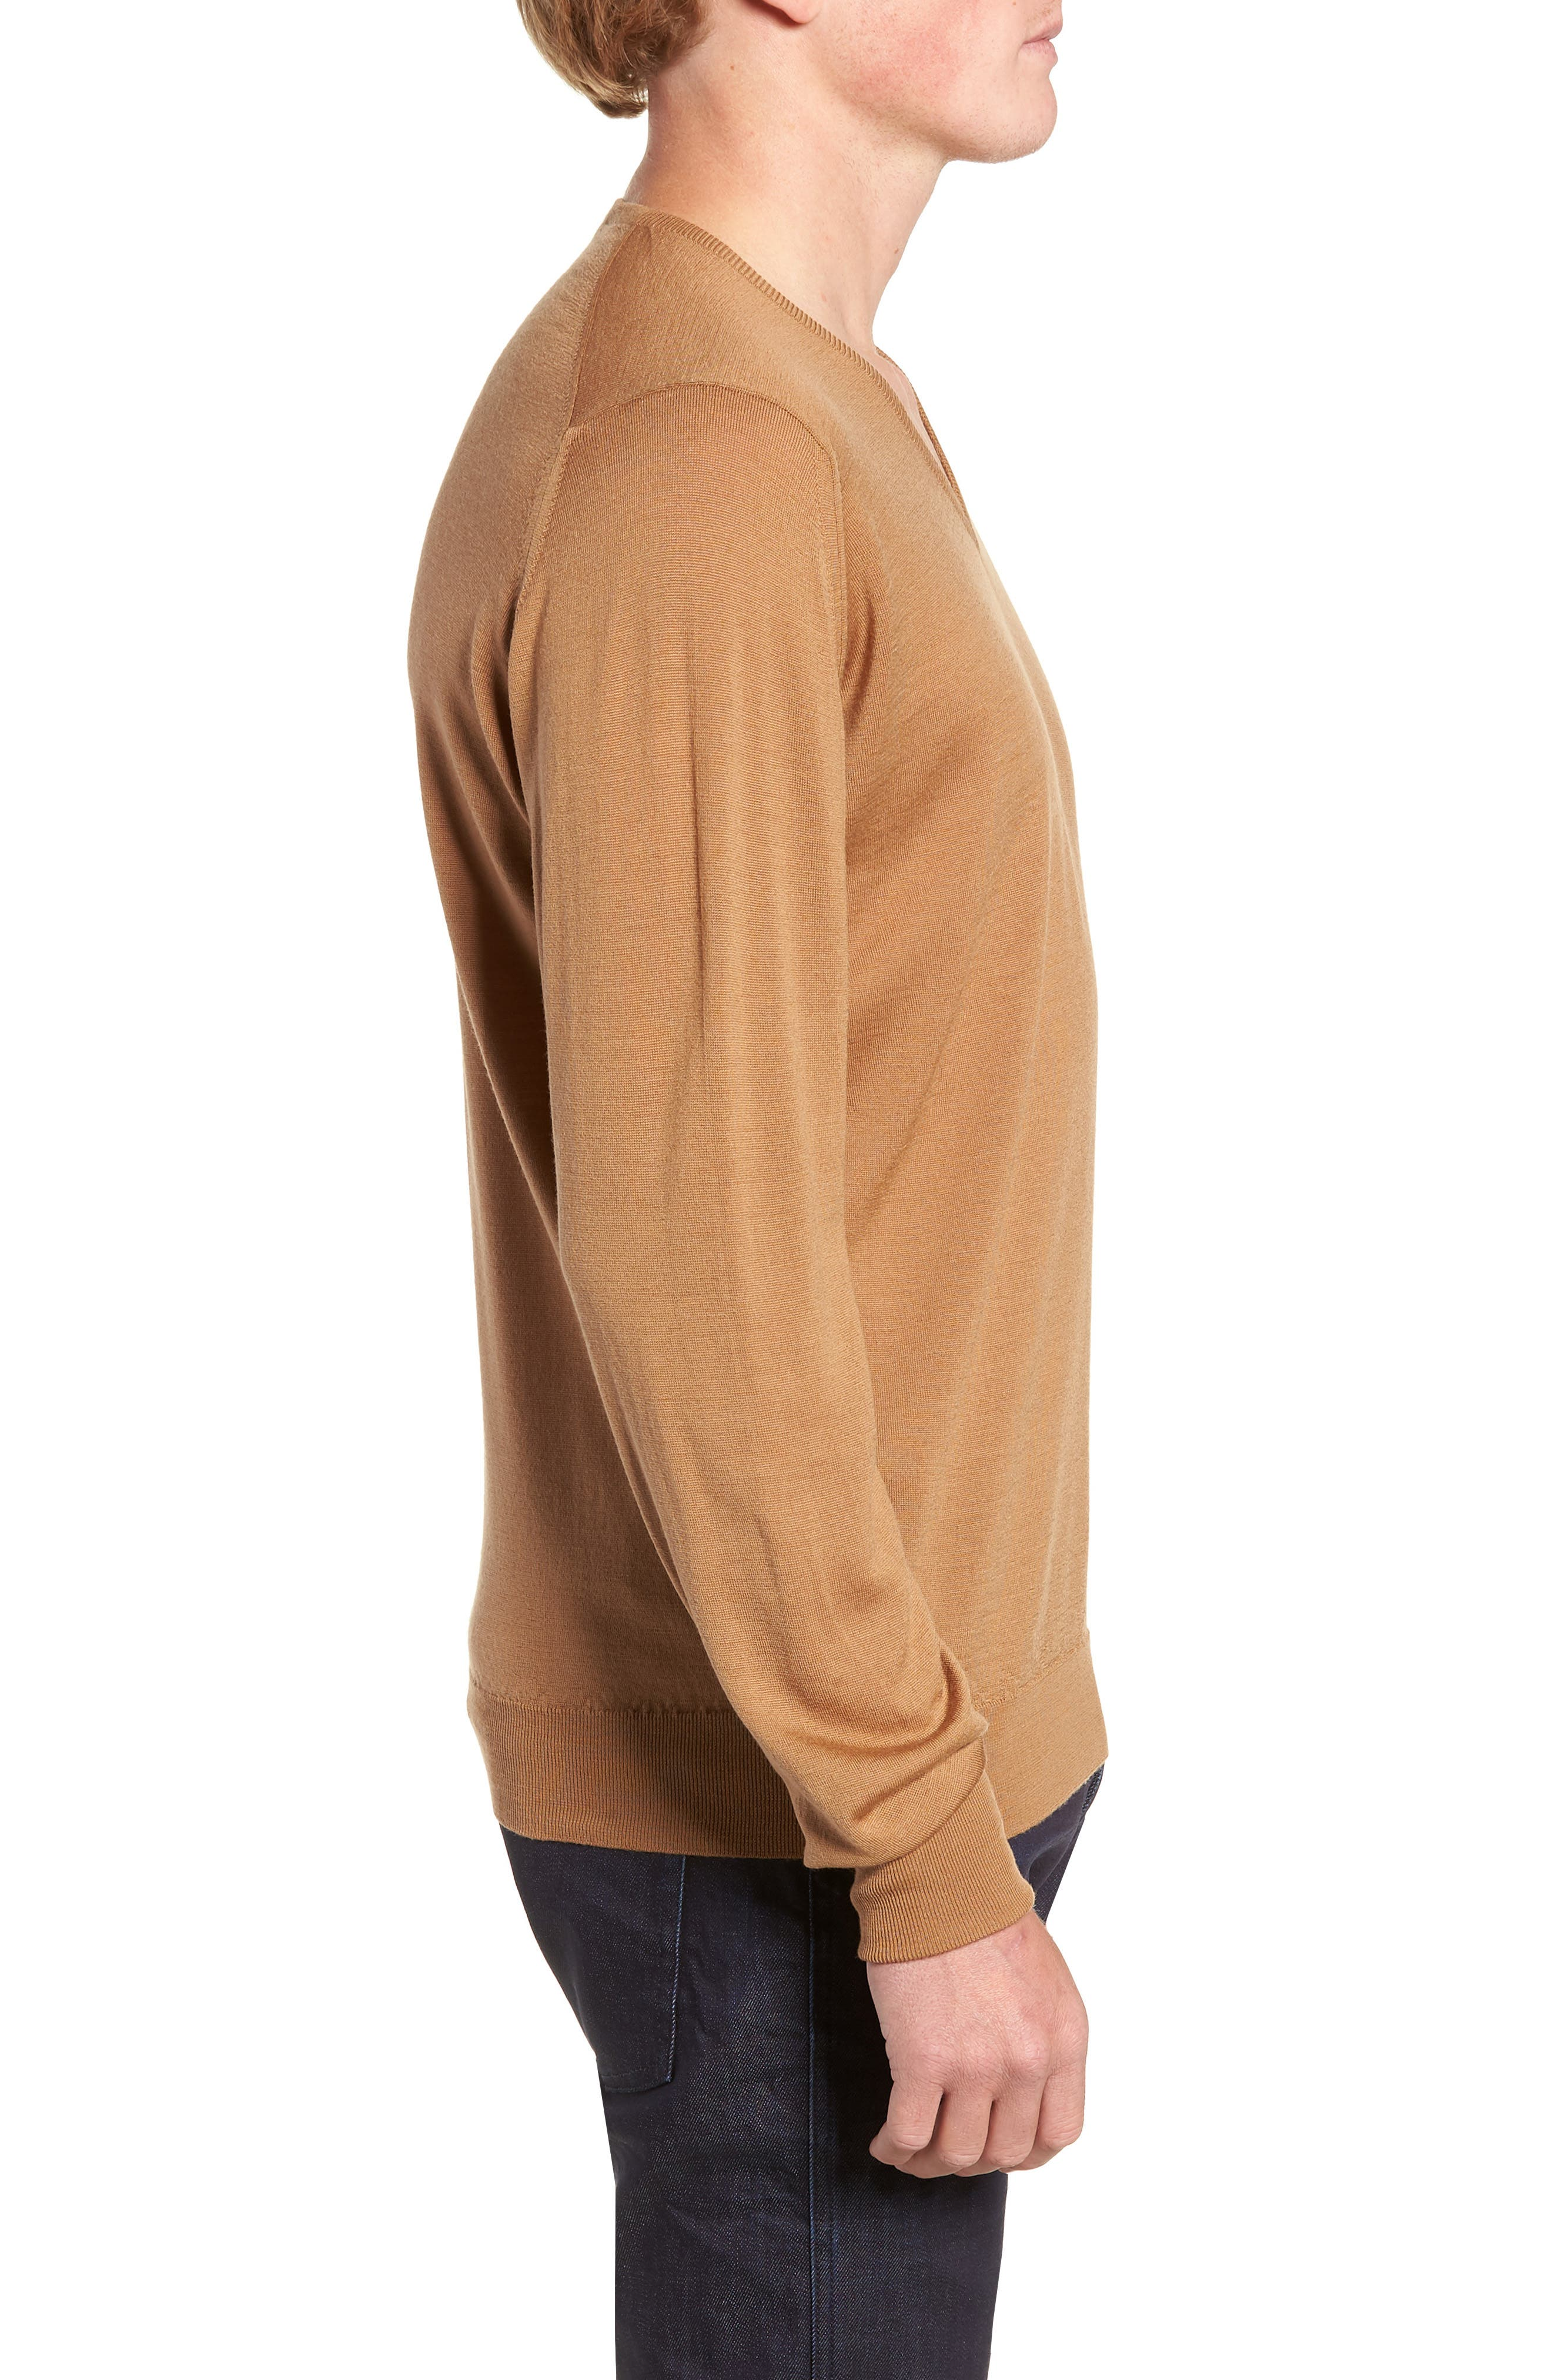 'Bobby' Easy Fit V Neck Wool Sweater,                             Alternate thumbnail 3, color,                             251